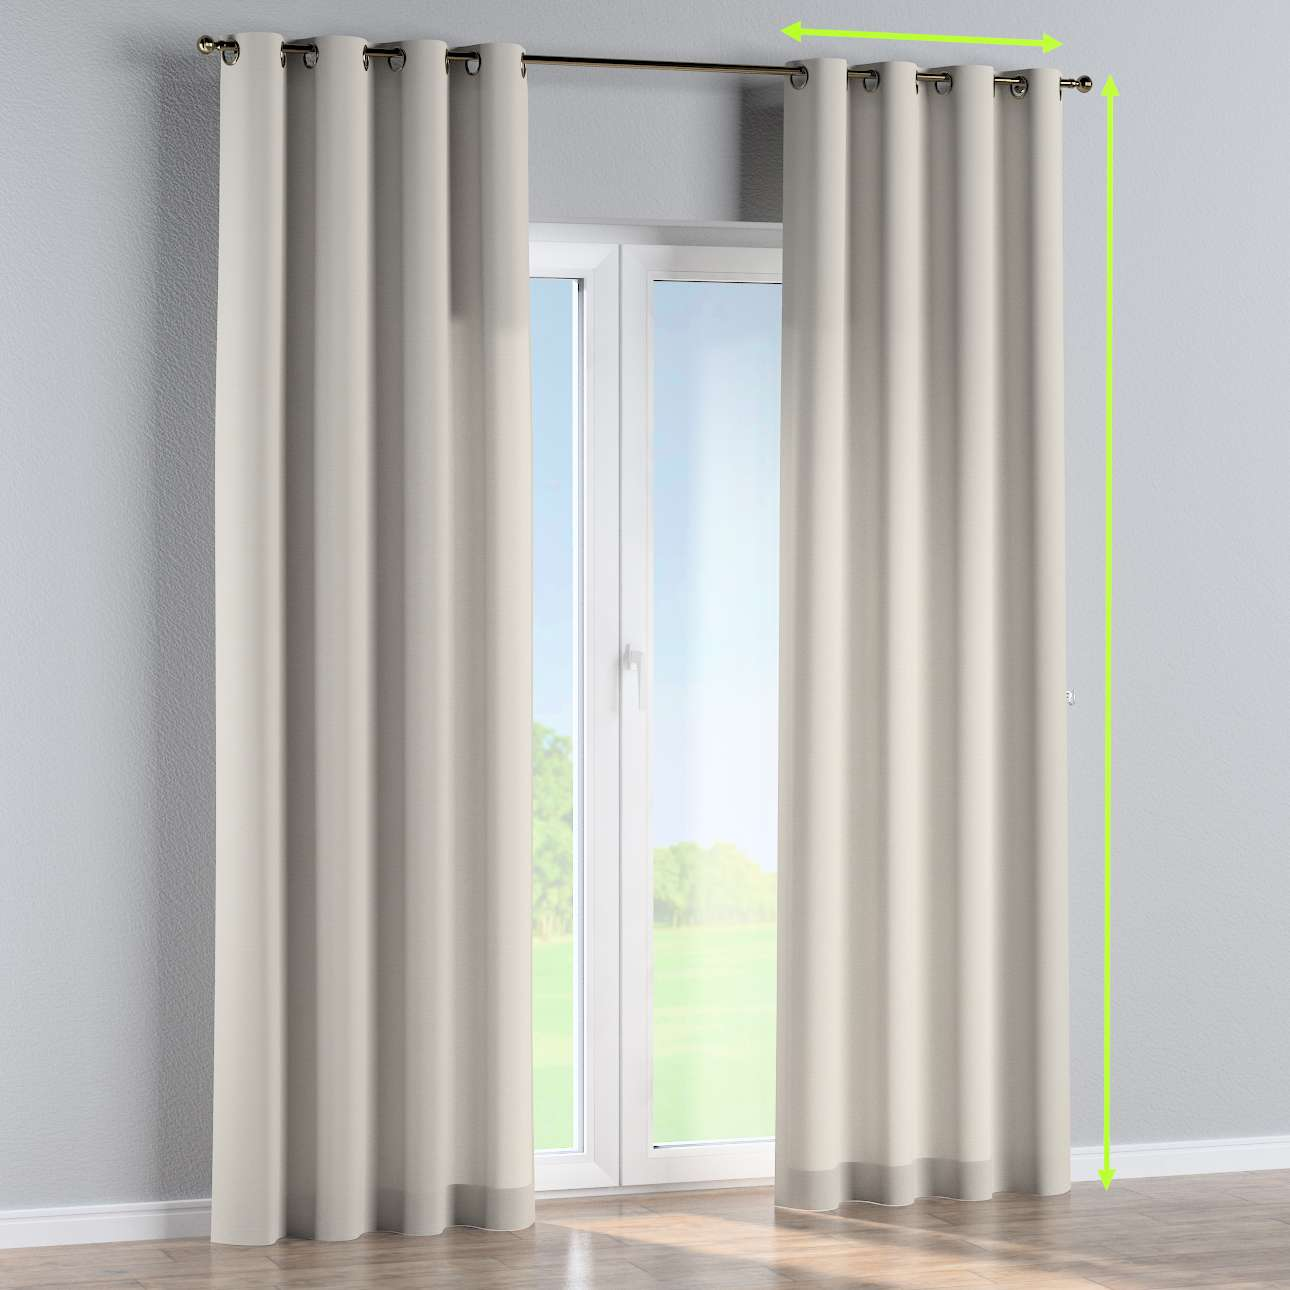 Eyelet curtains in collection Panama Cotton, fabric: 702-31